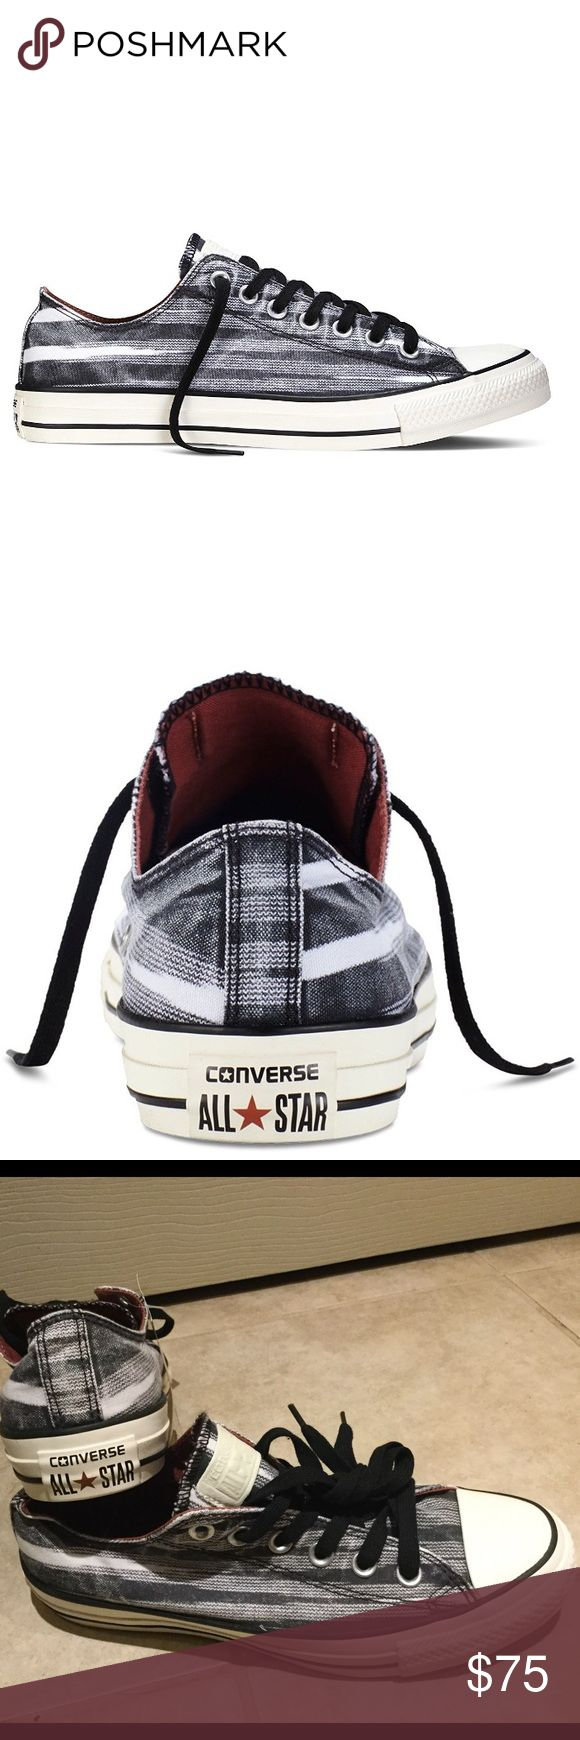 NIB Converse Missoni Chuck Taylor Ox Sneakers Awesome Converse low top lace-ups in Auburn/Black/Egret.  Can be unisex.  Women's size 7.5/Men's size 5.5. No box top. Open to offers! Converse Shoes Sneakers